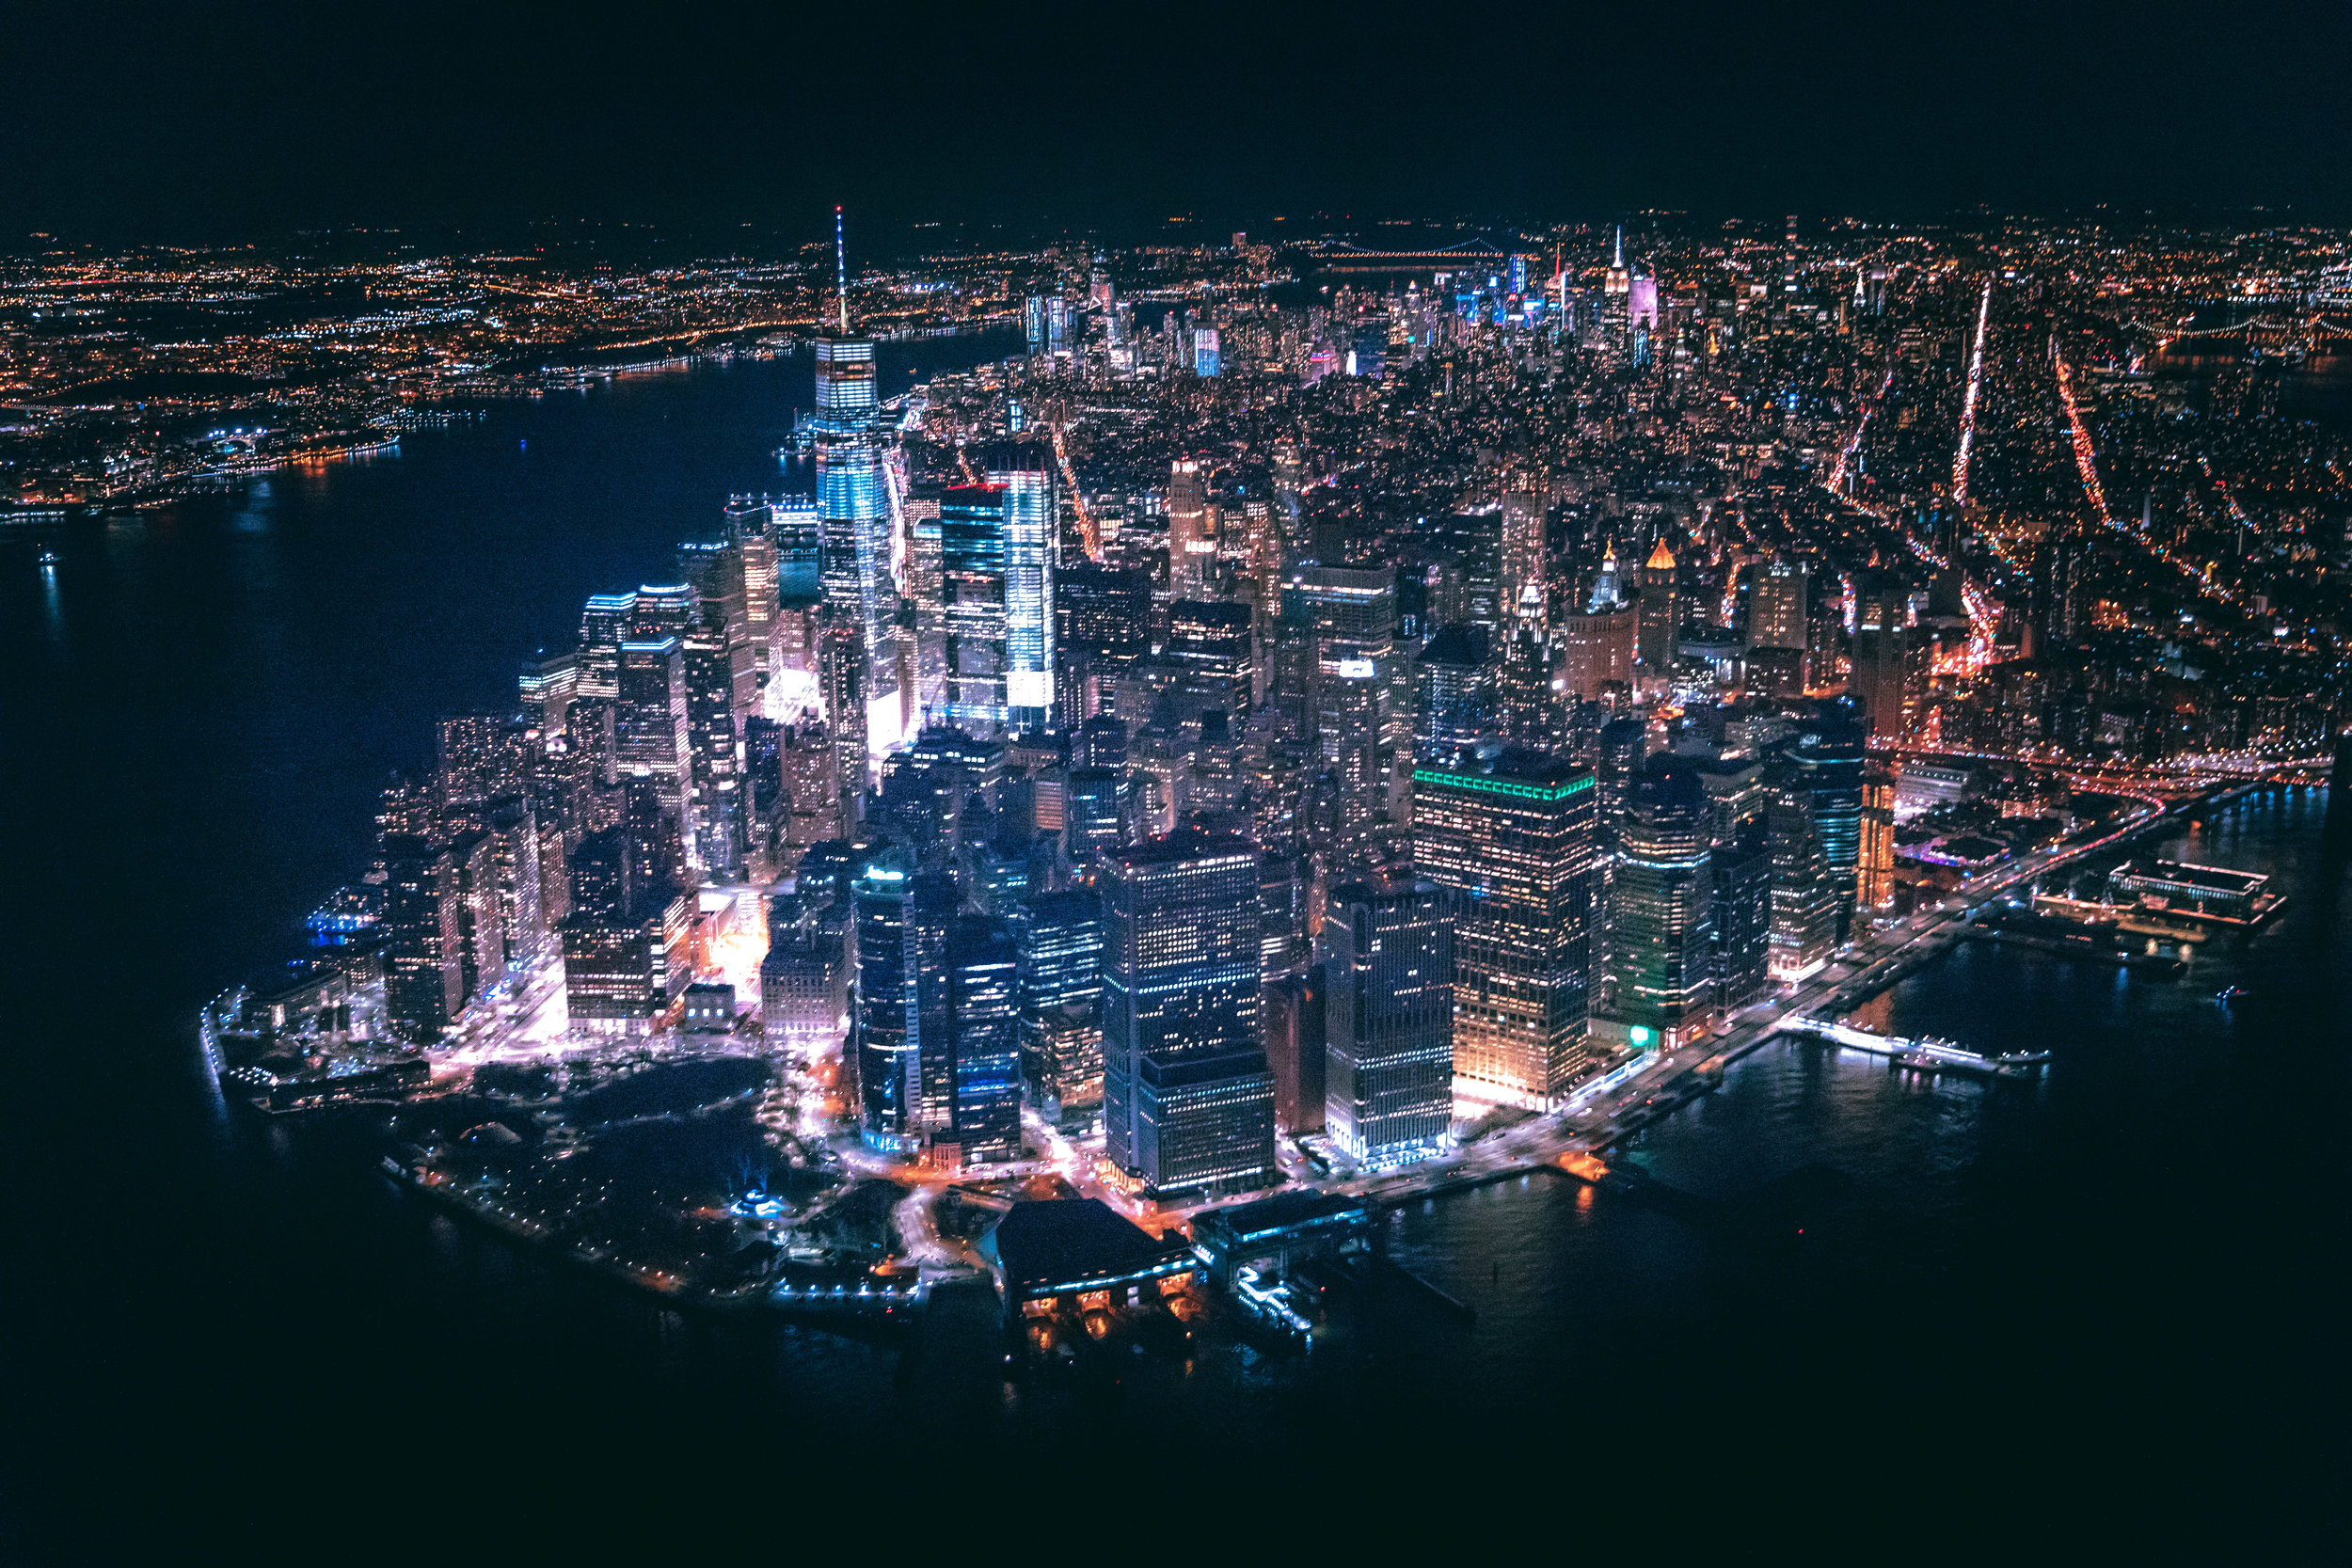 Discover New York with Air New Zealand - Return Economy Class flights departing Auckland and 3 nights from $2,813*(NZD)Sale ends: 30 Nov 2019Travel Period: Commenced 20 Jan 2019 and completed 15 Dec 2019 (unless otherwise specified)